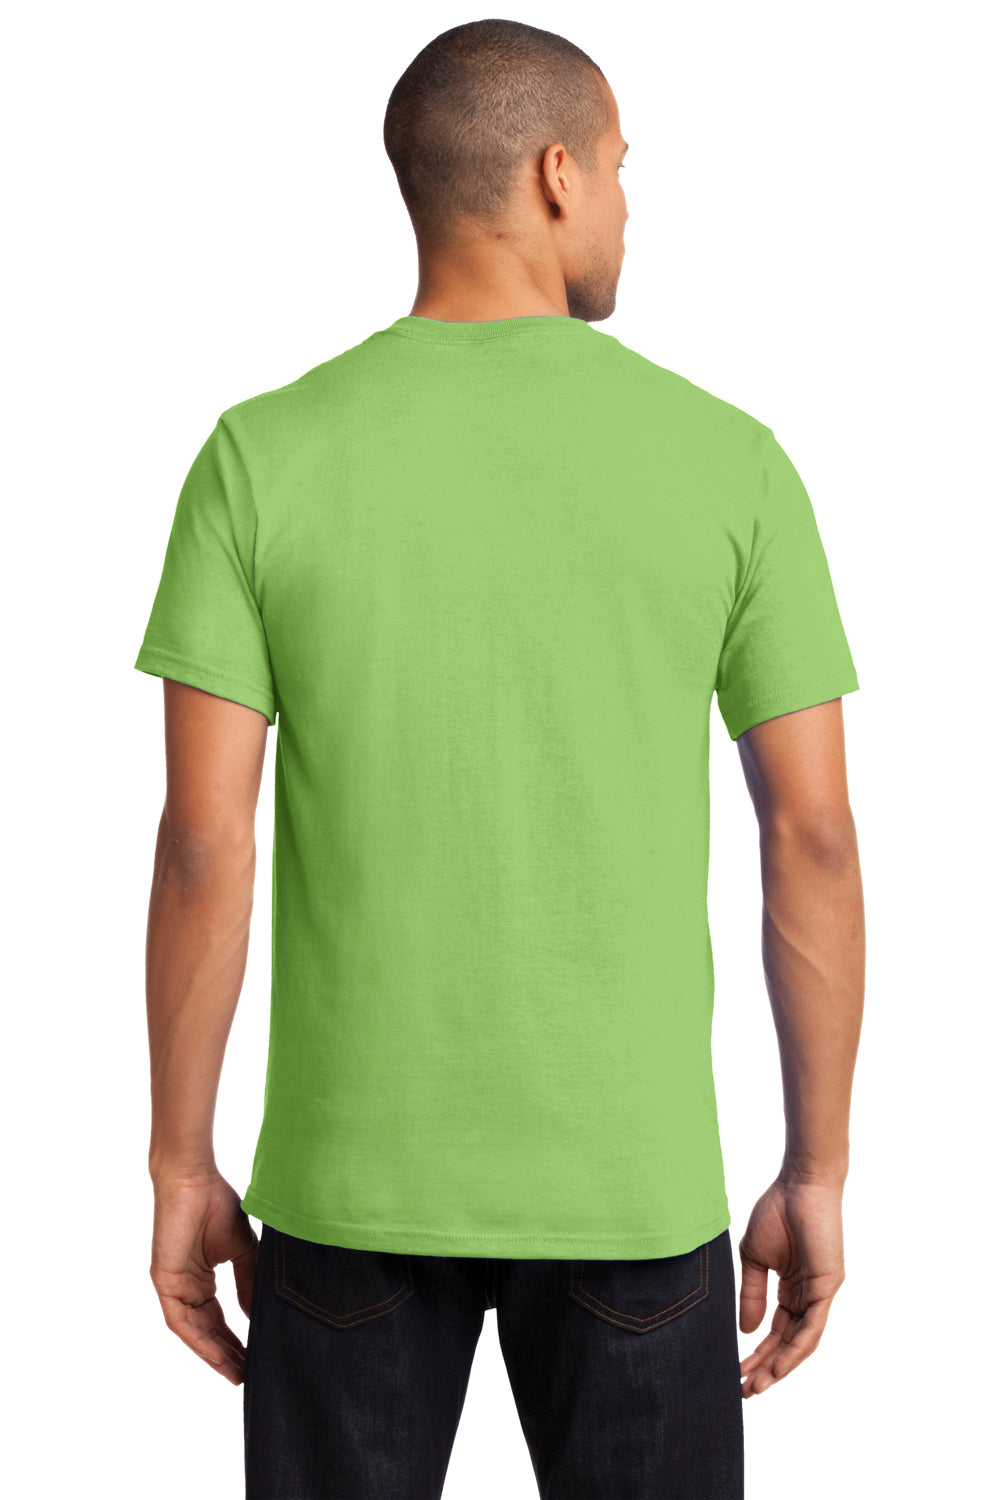 Port & Company PC61P Mens Essential Short Sleeve Crewneck T-Shirt w/ Pocket Lime Green Back